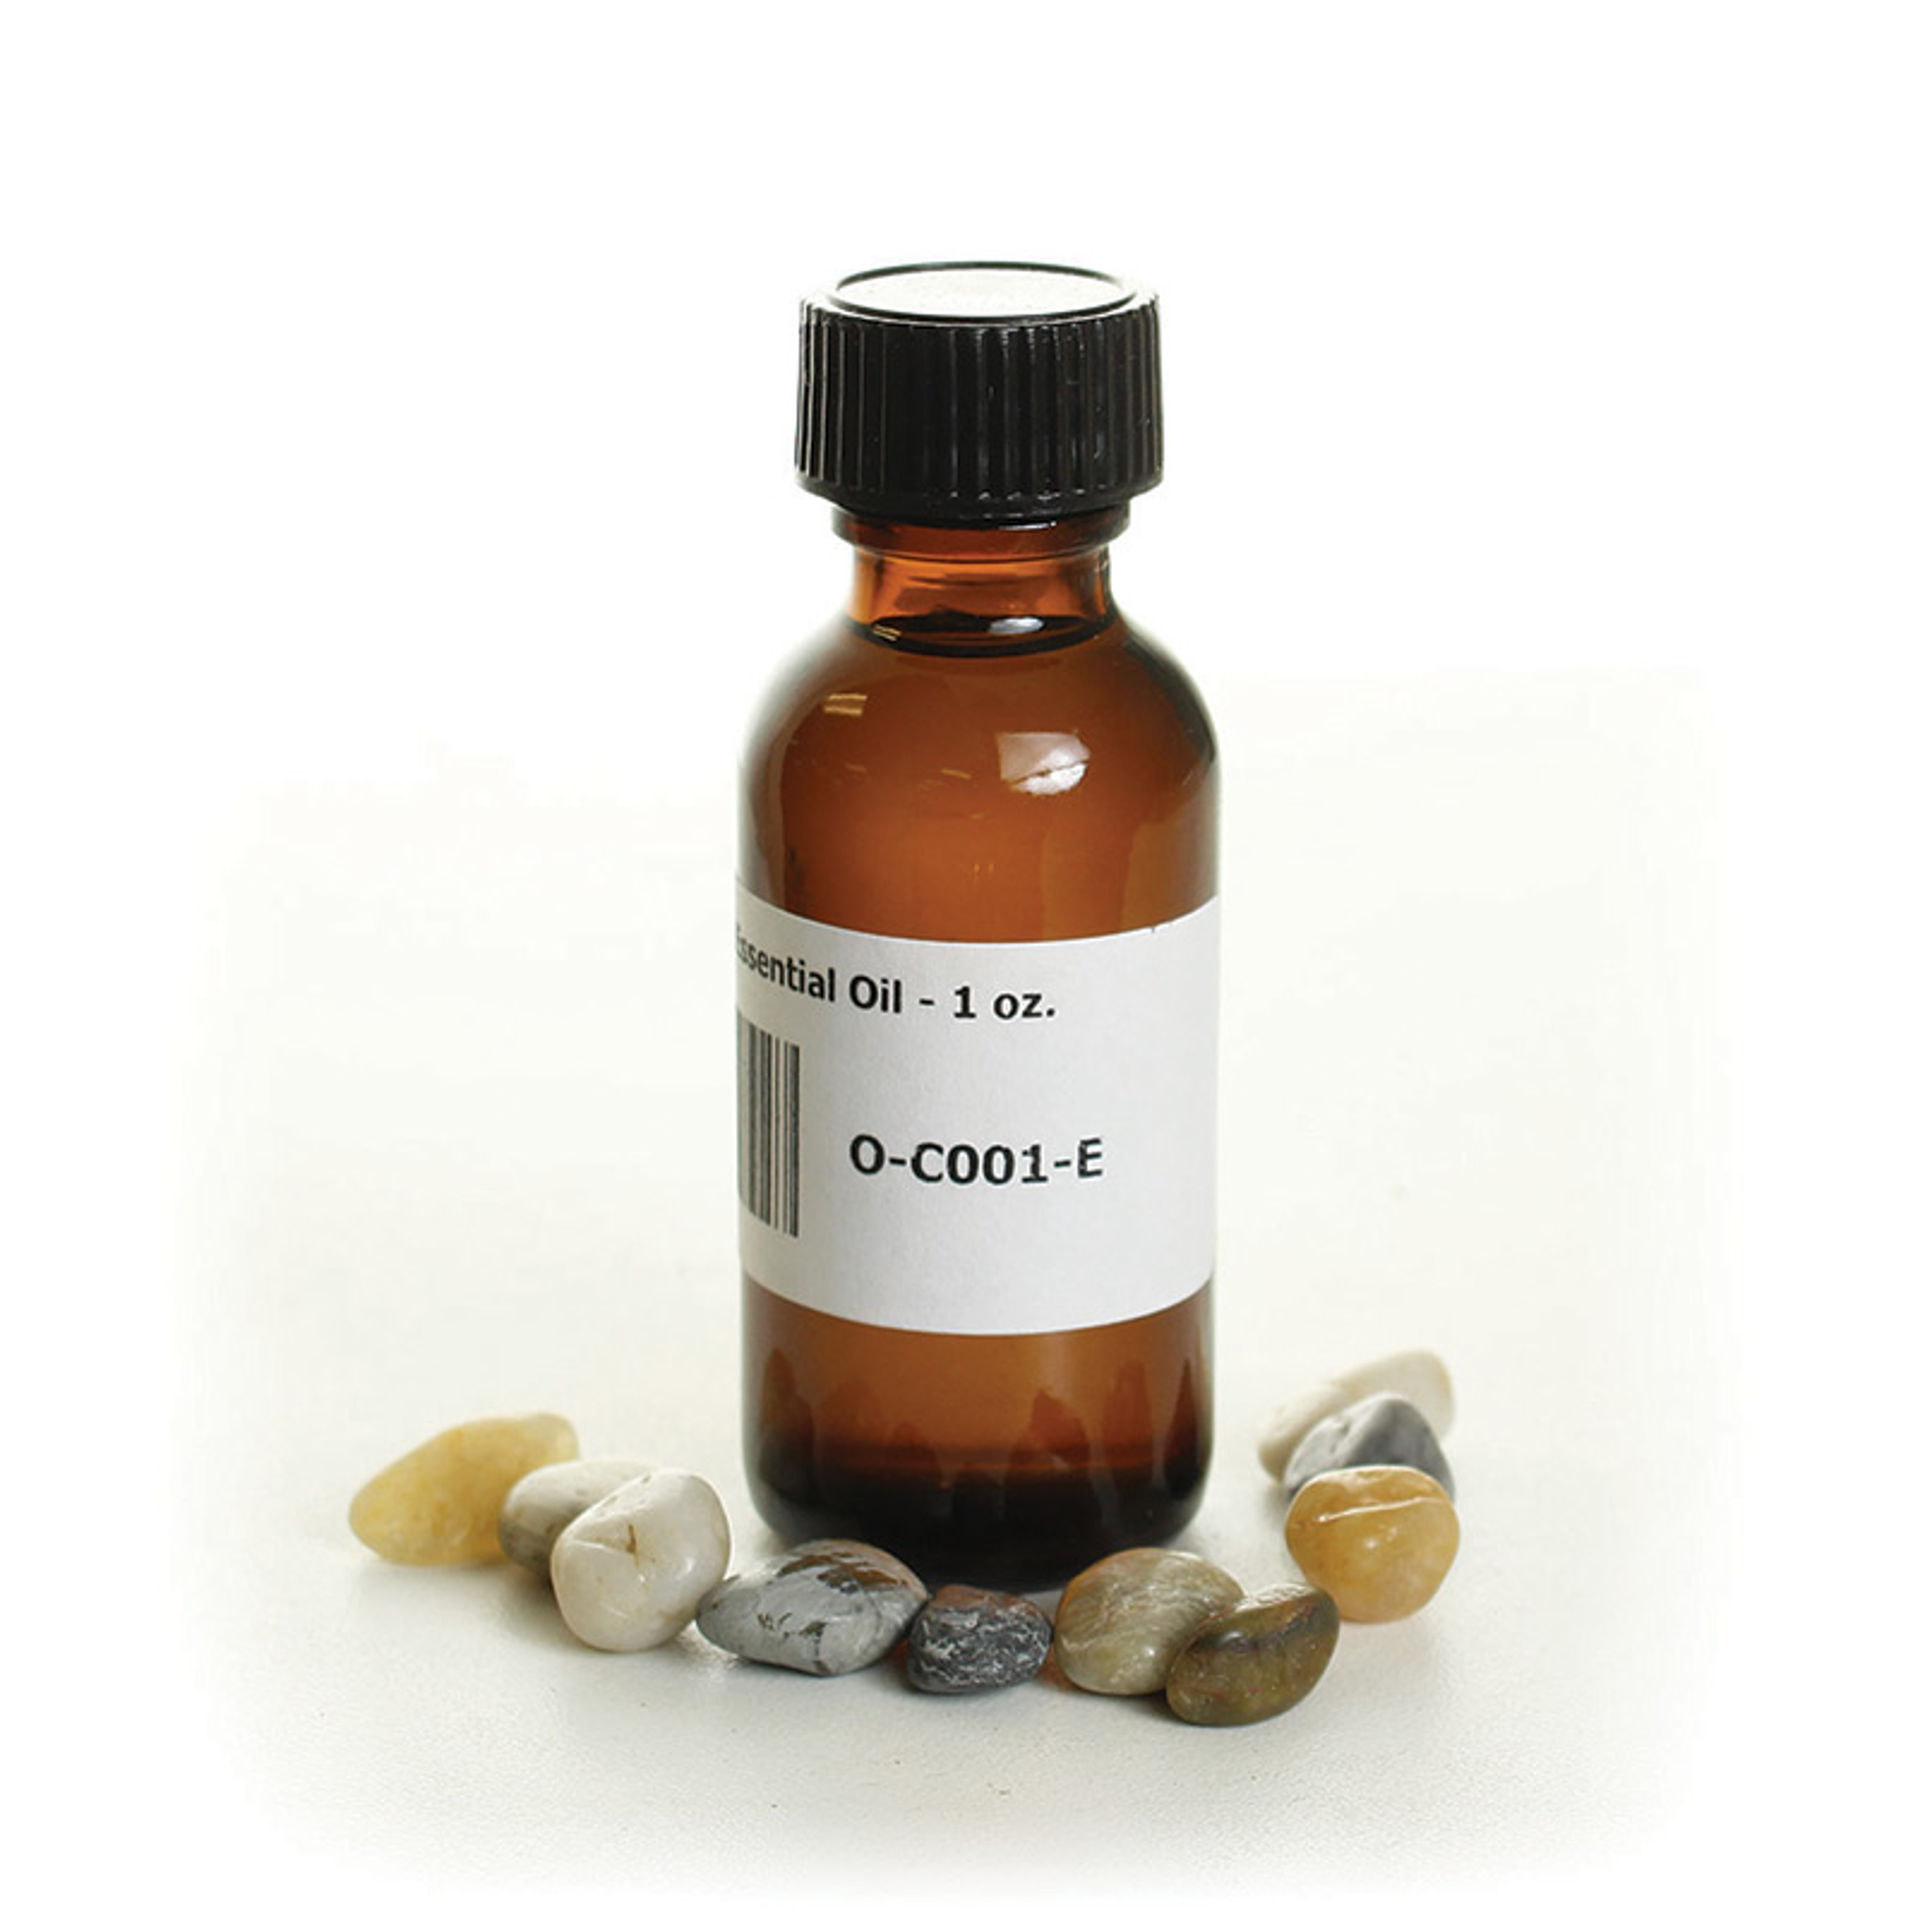 Picture of Clary Sage Essential Oil - 1 oz.